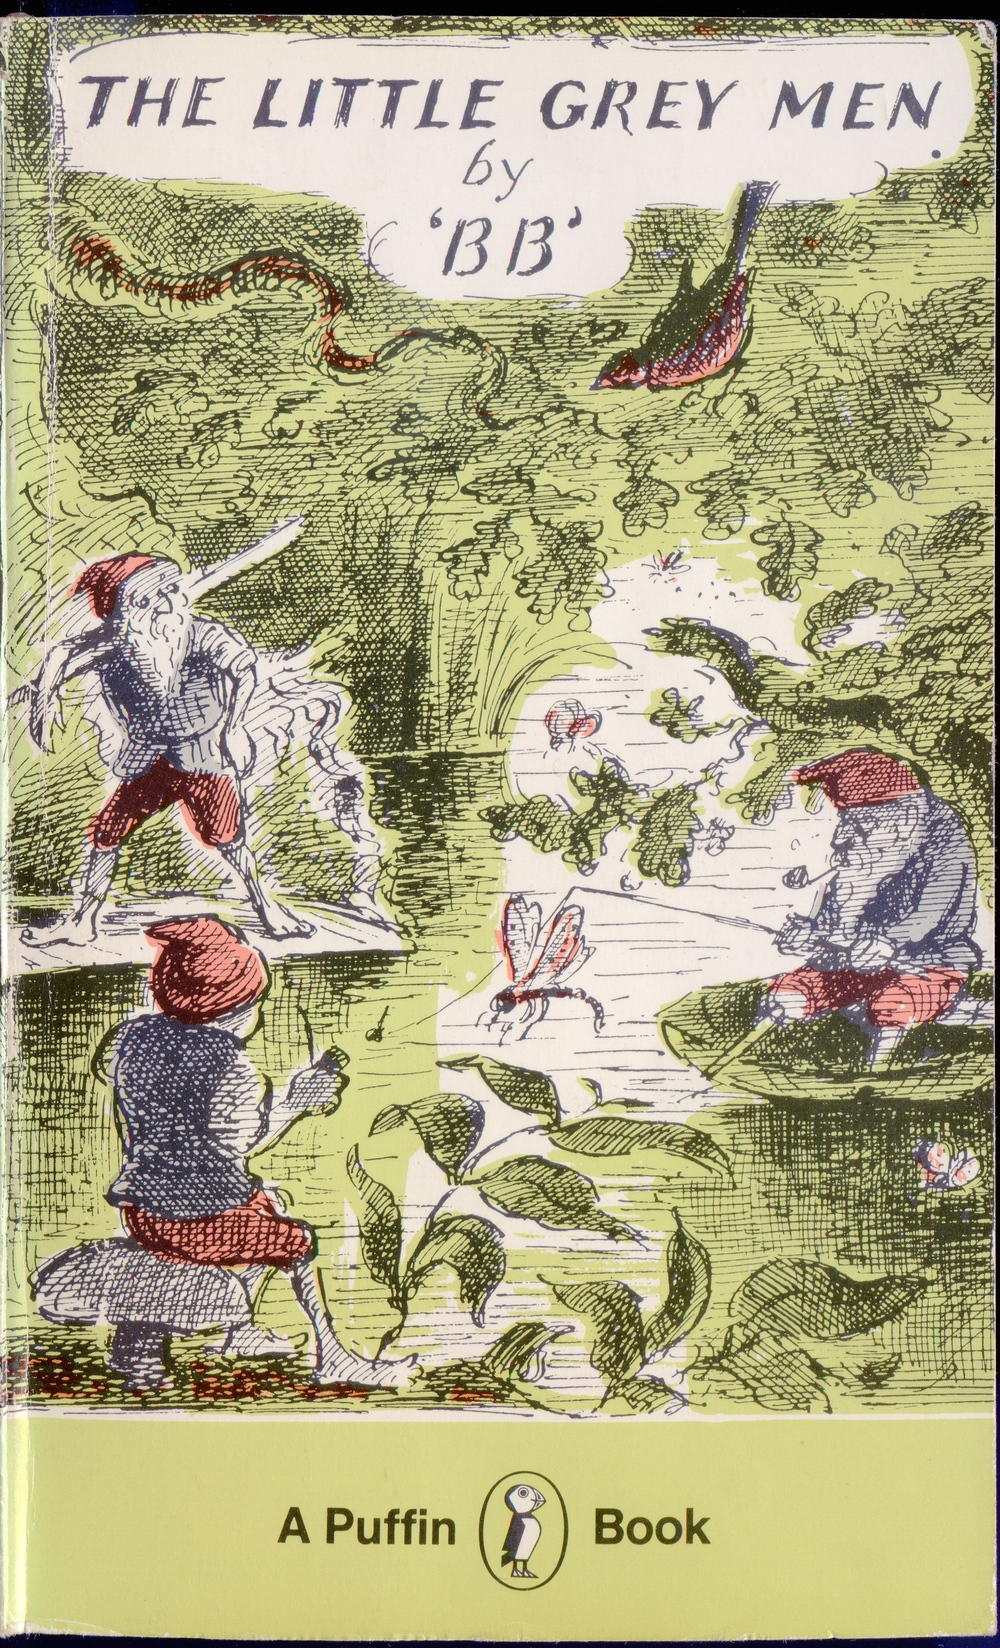 """The Little Grey Menby """"BB"""" (Denys Watkins-Pitchford).First published by Eyre & Spottiswood, 1942. Puffin edition 1962, this reprint 1975 (ii). Cover illustration by Edward Ardizzone. via"""